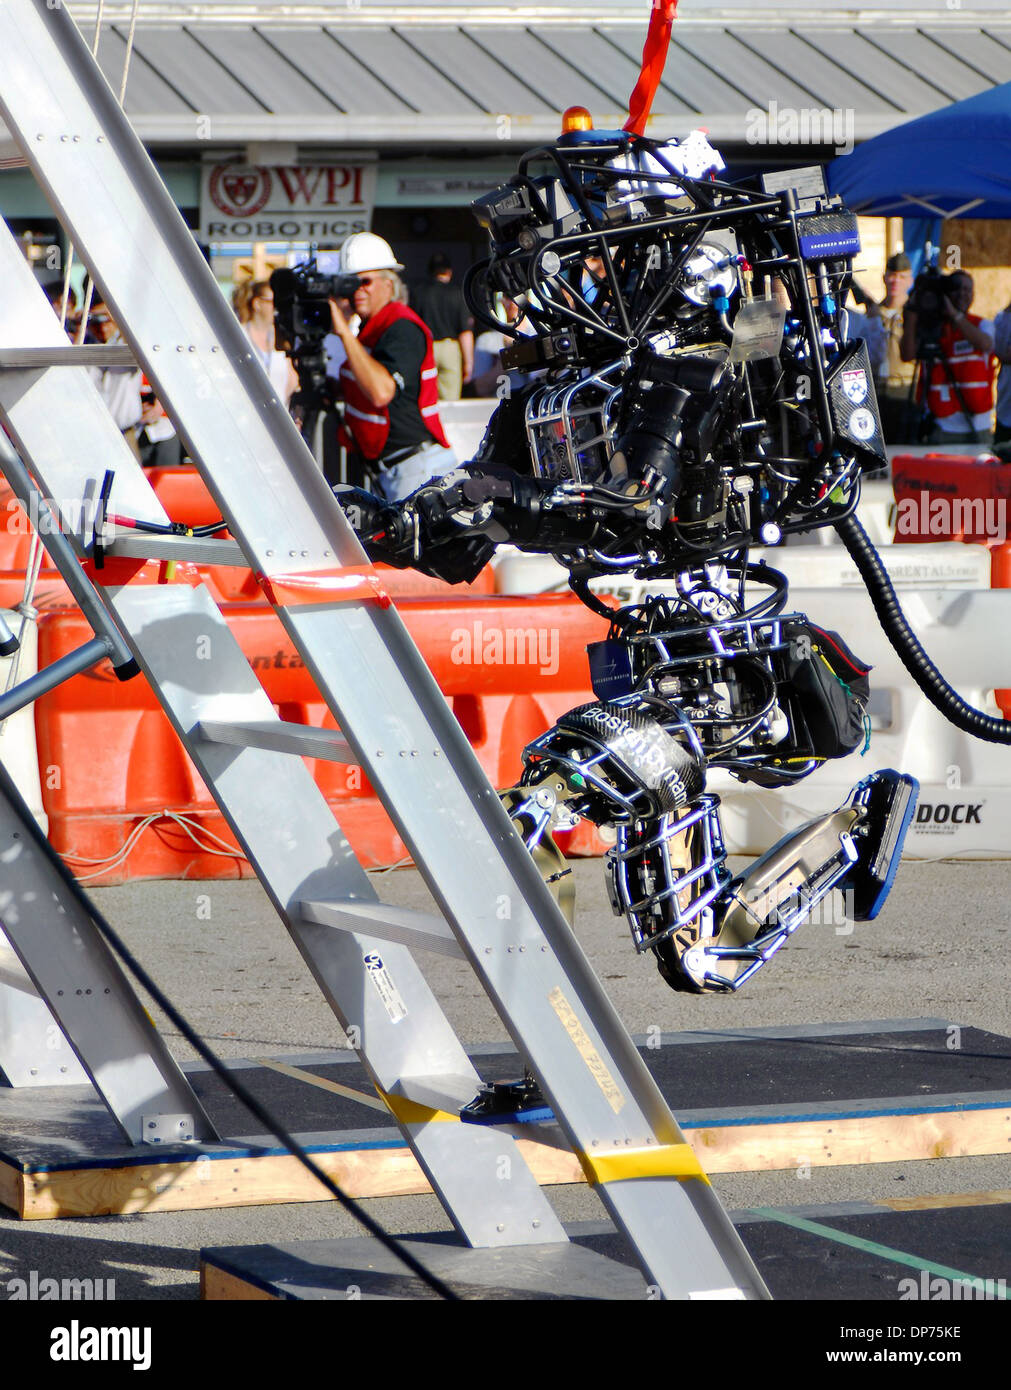 Boston Dynamic's Atlas robot during the DARPA Rescue Robot Showdown at Homestead Miami Speedway December 20, - Stock Image